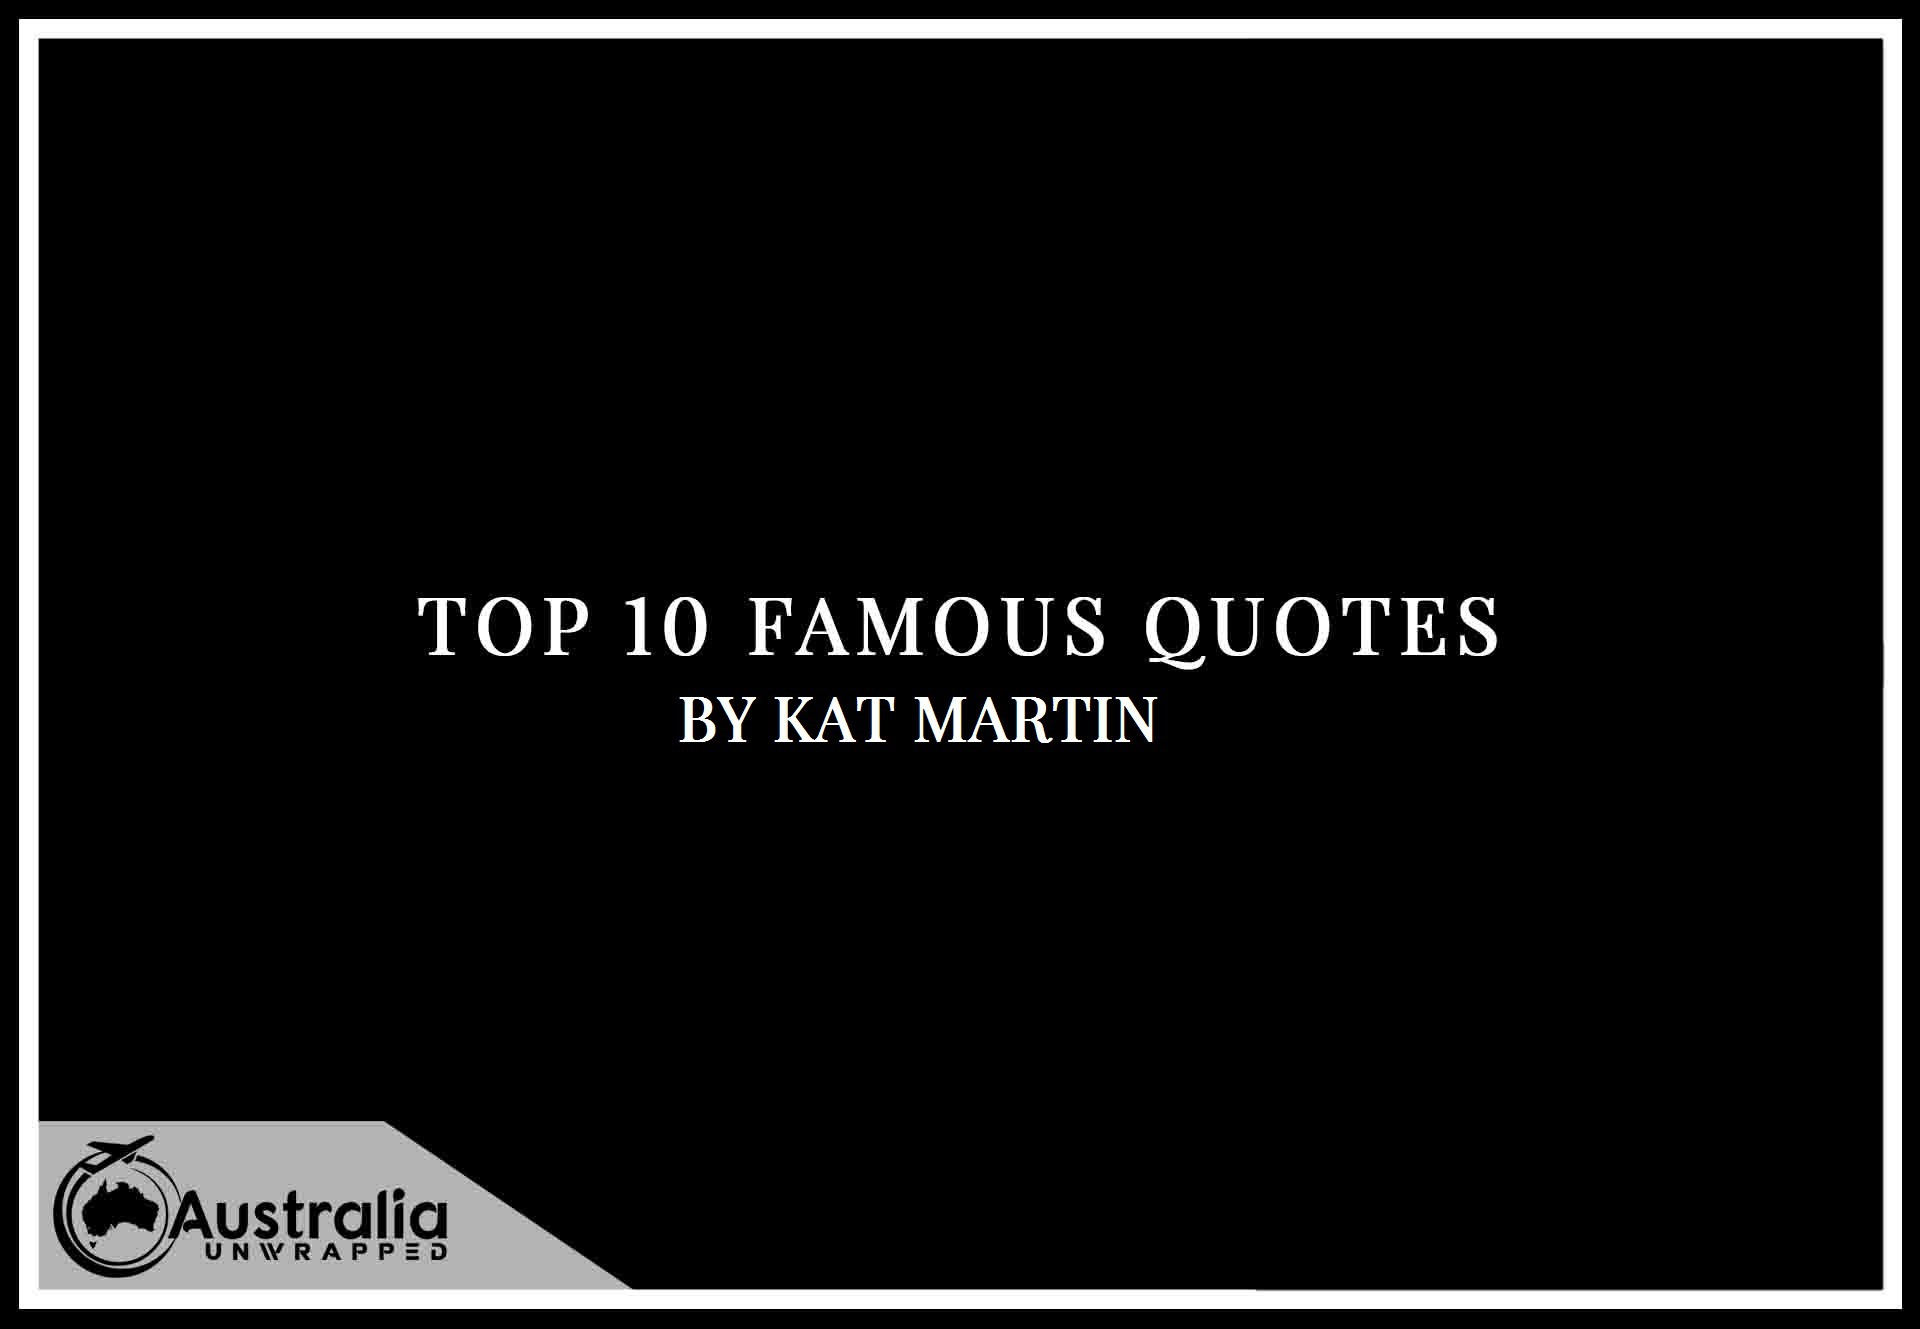 Kat Martin's Top 10 Popular and Famous Quotes